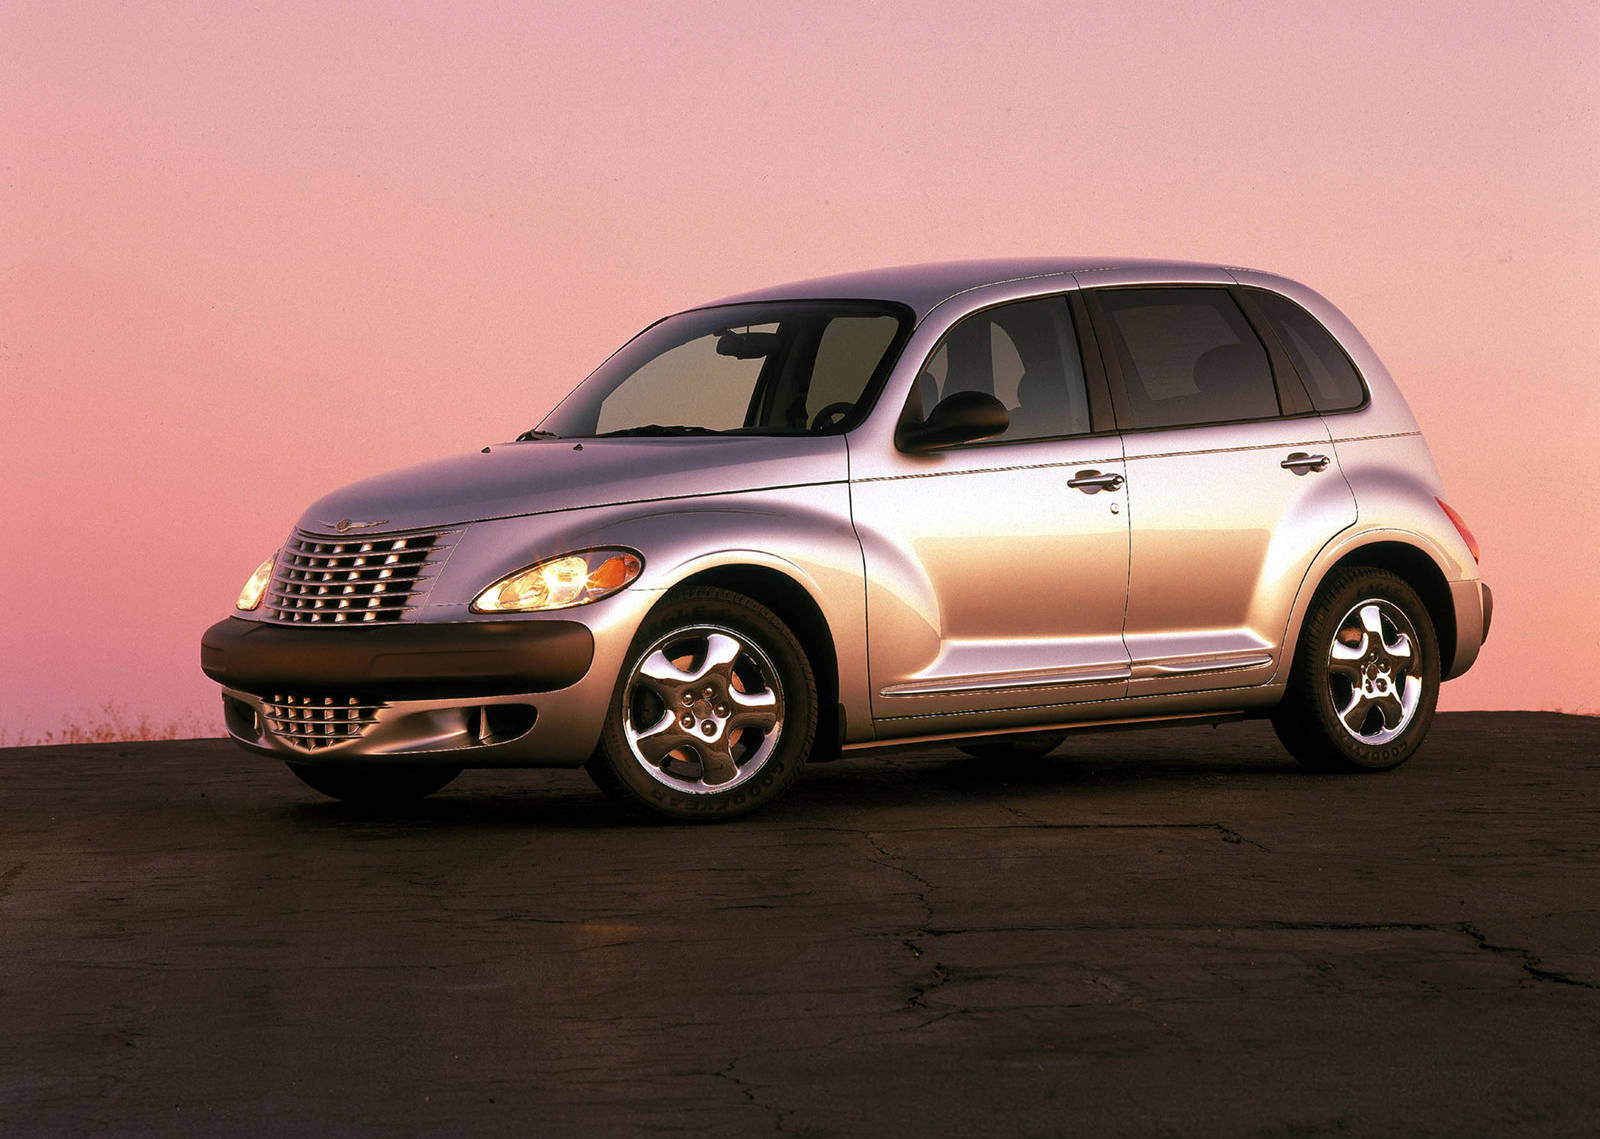 used chrysler pt cruiser review 2000 2003 carsguide. Black Bedroom Furniture Sets. Home Design Ideas